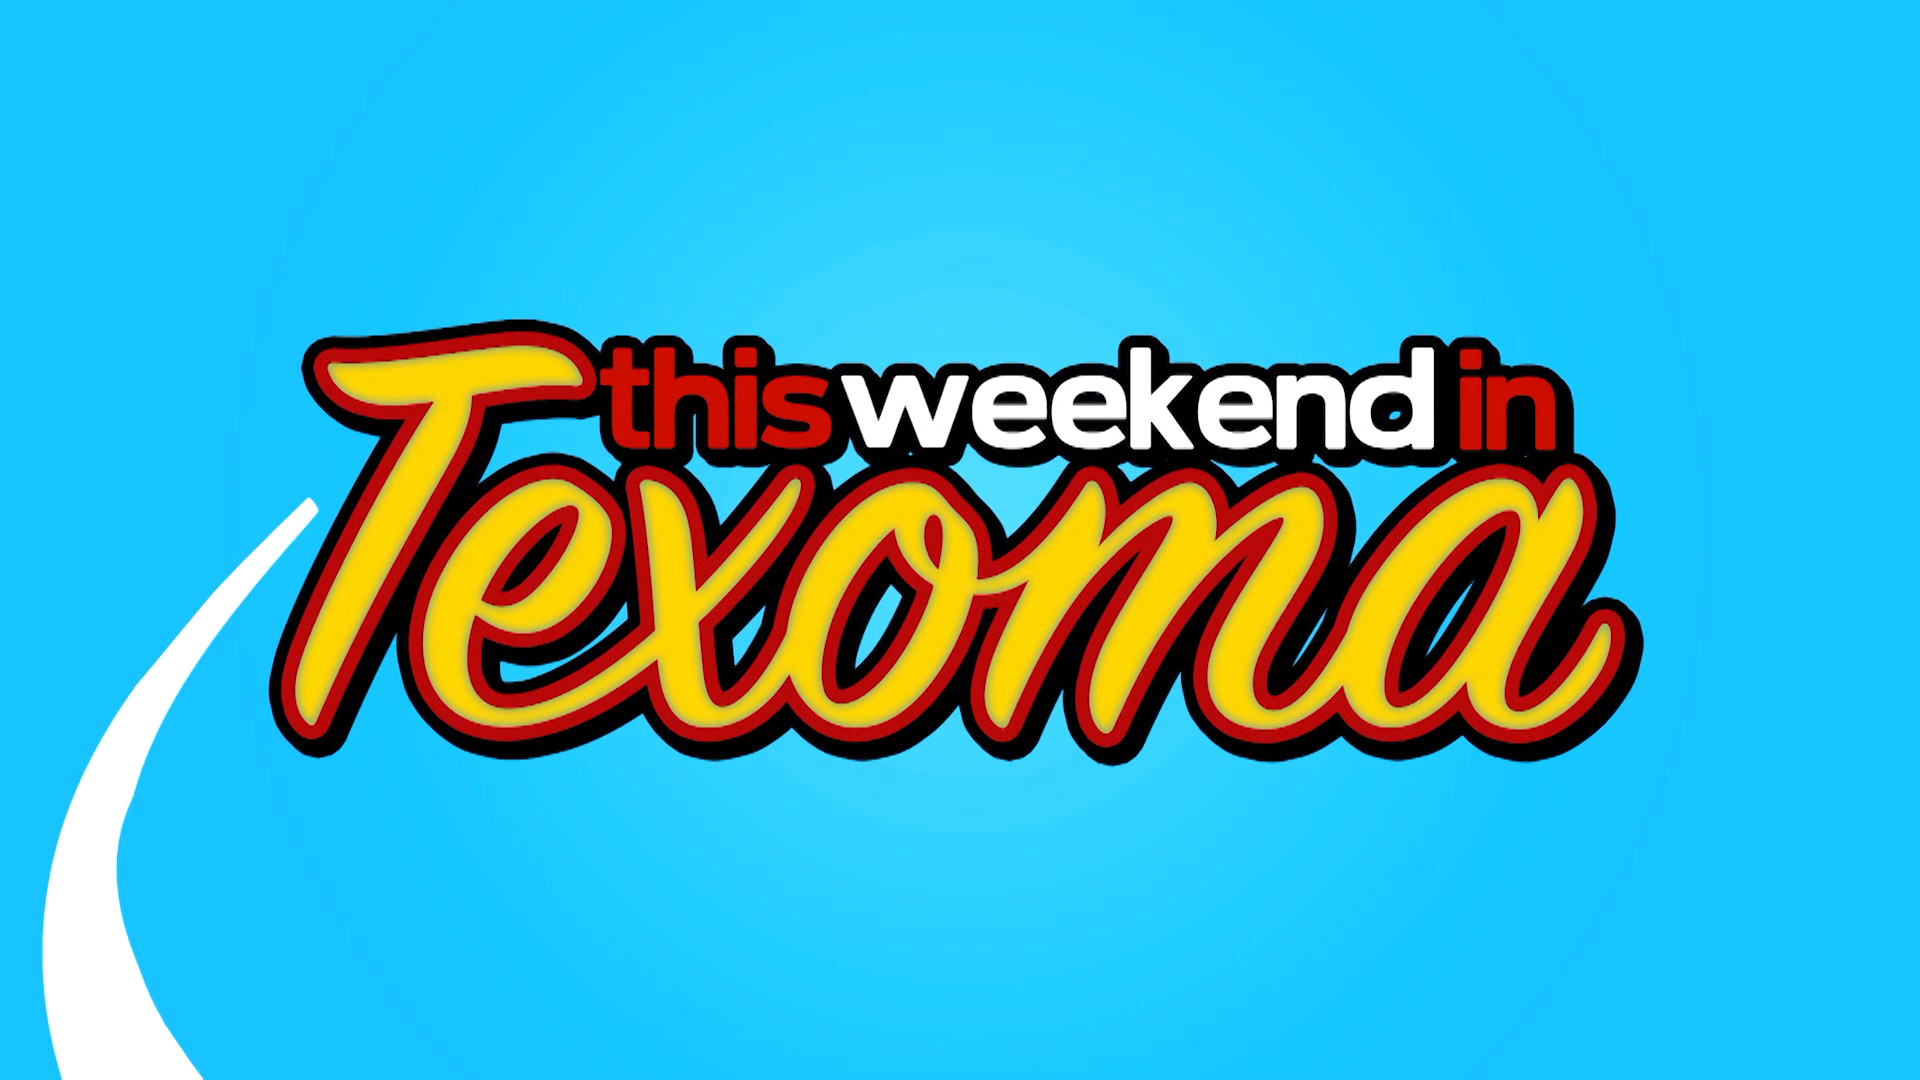 this weekend in texoma.Still001_1444330494629.png